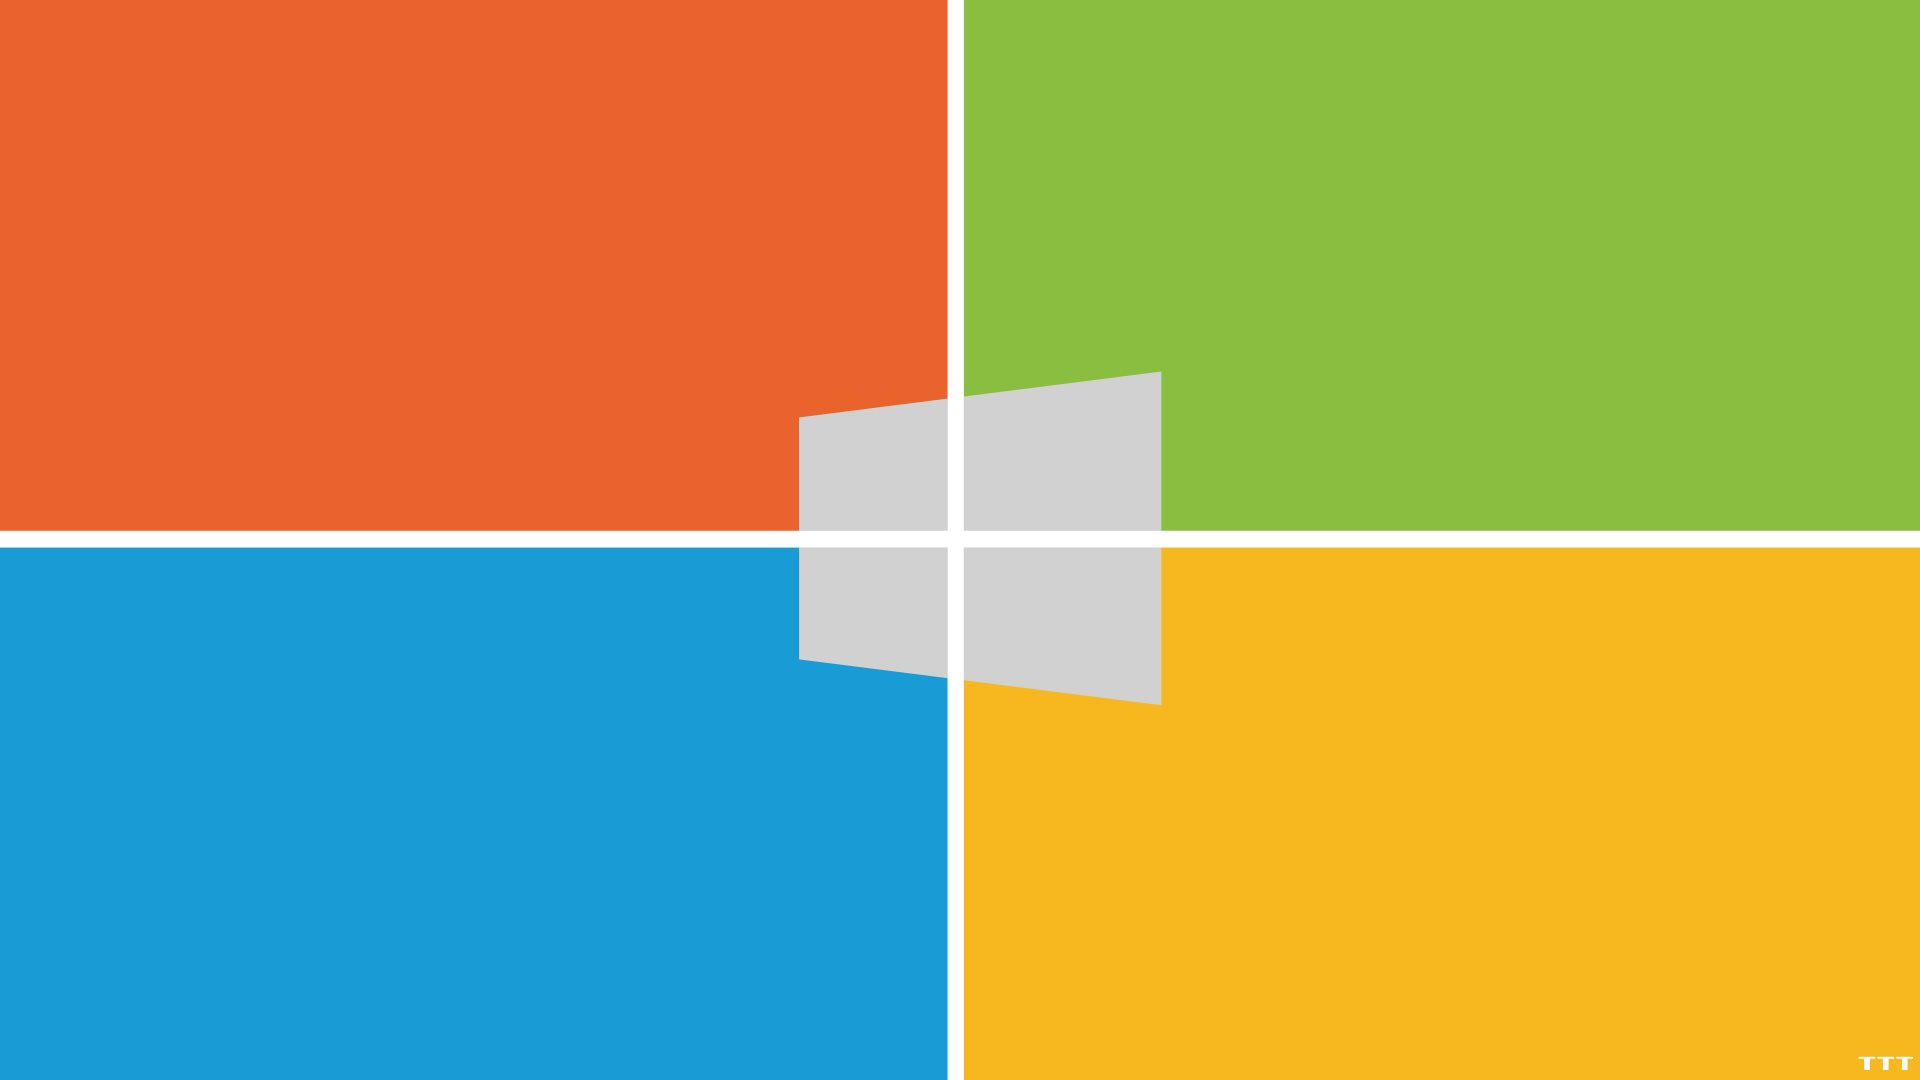 microsoft windows 8.1 hd wallpapers - wallpapersafari